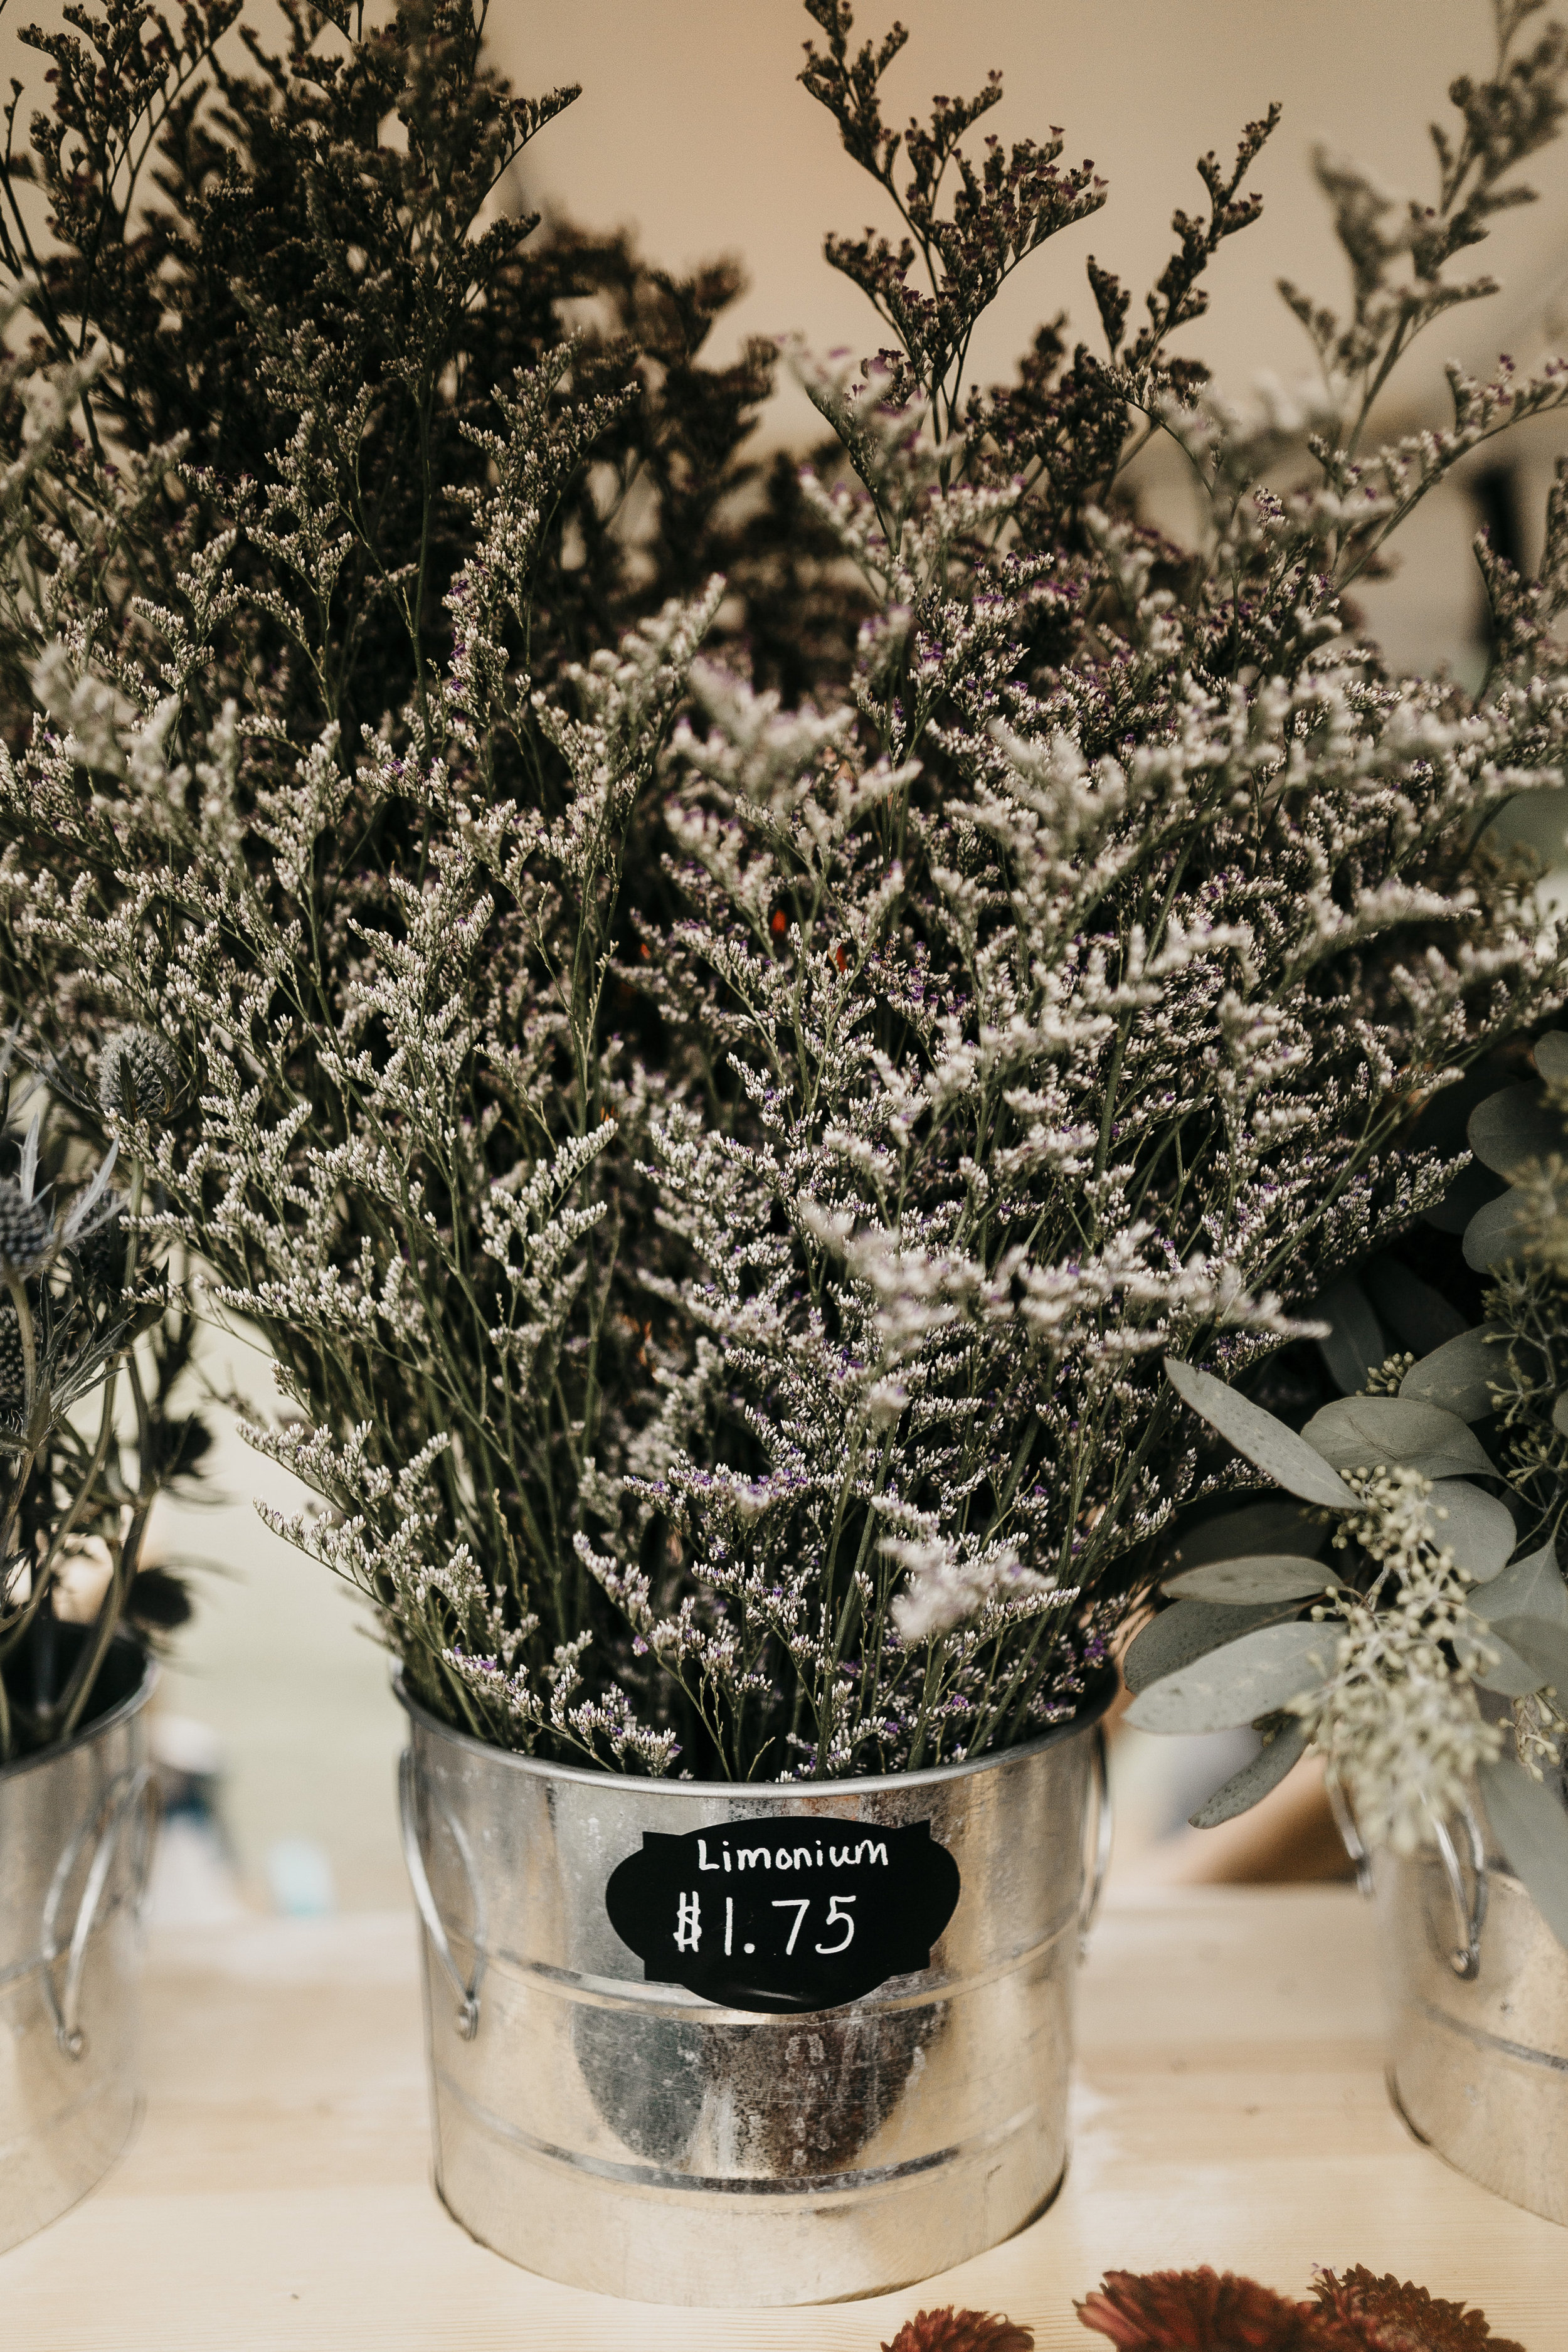 Limonium   The flower truck's favorite filler! Limonium is almost always on the truck and looks great with purples, blues, and whites. It adds a lot of volume to a bouquet and sure to a delicate addition to the bouquet.